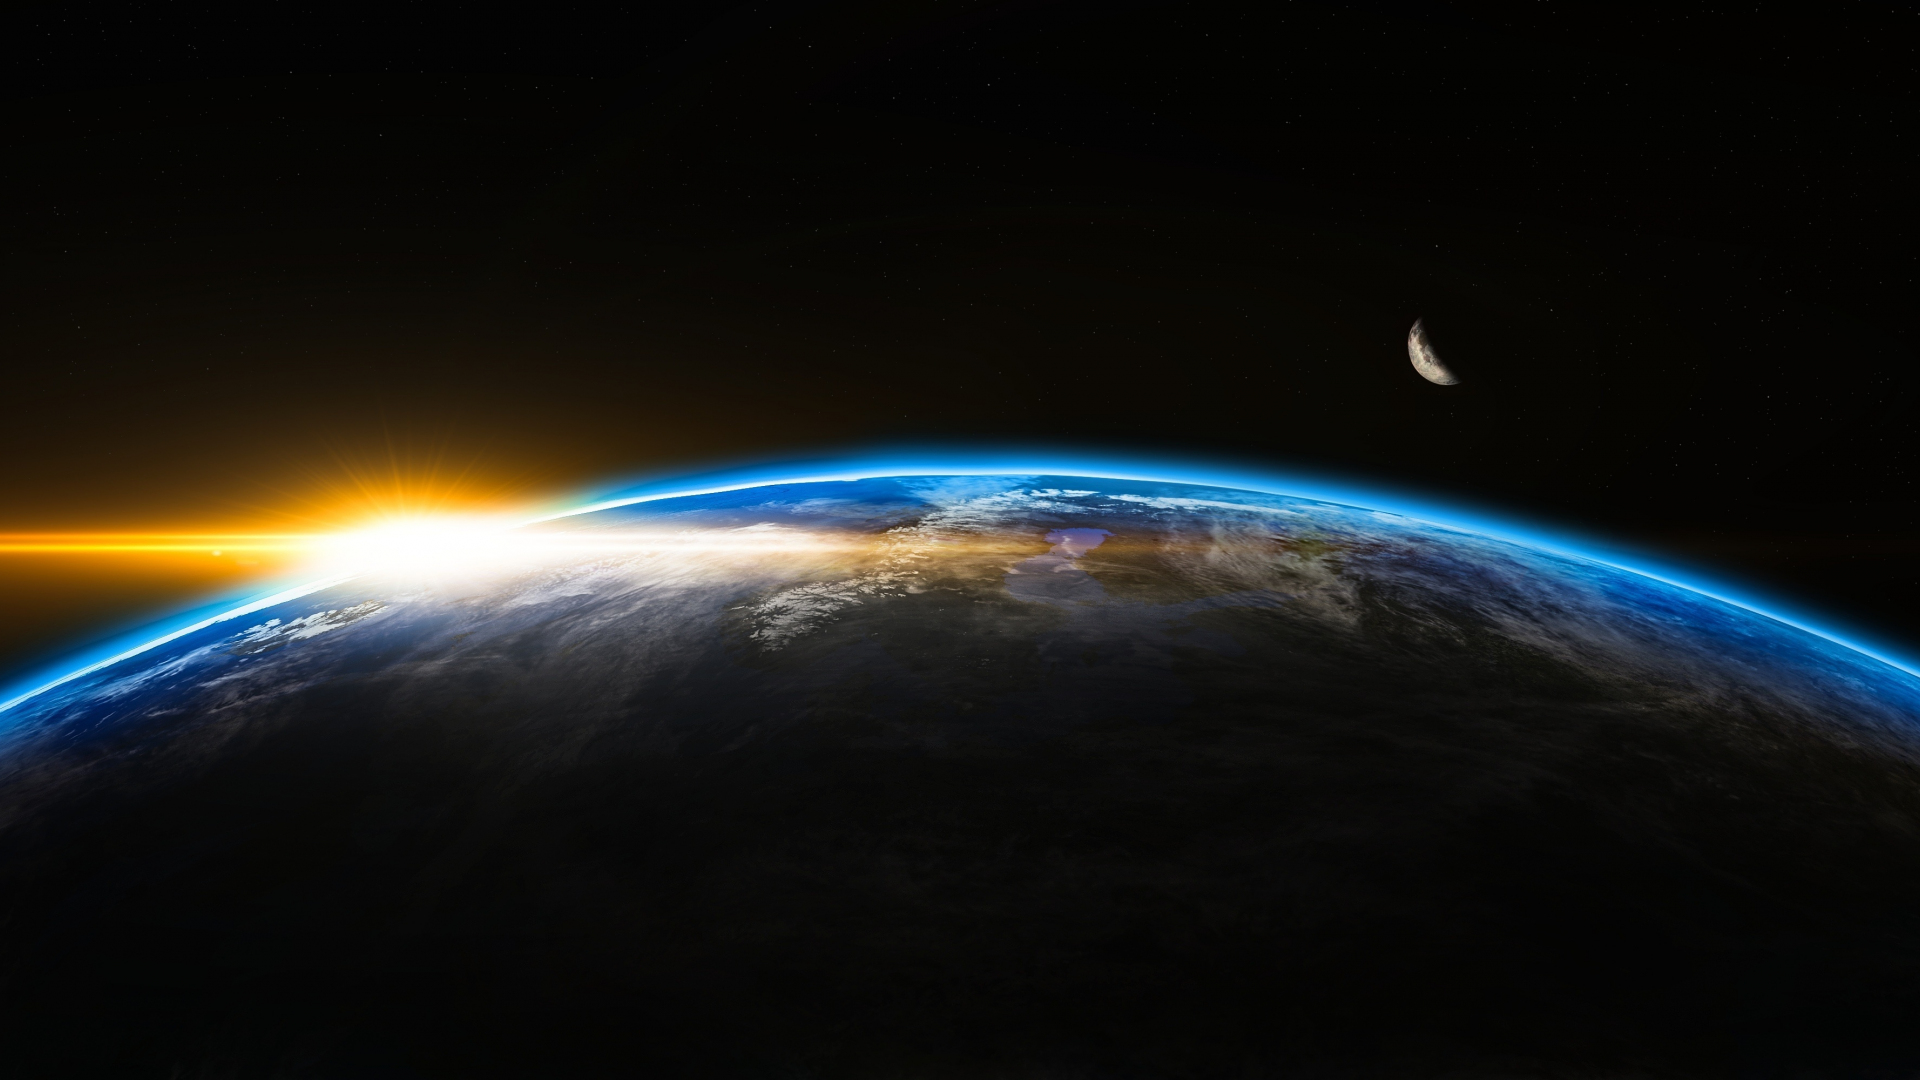 Download 1920x1080 Wallpaper Earth Planet Space Moon Sunrise